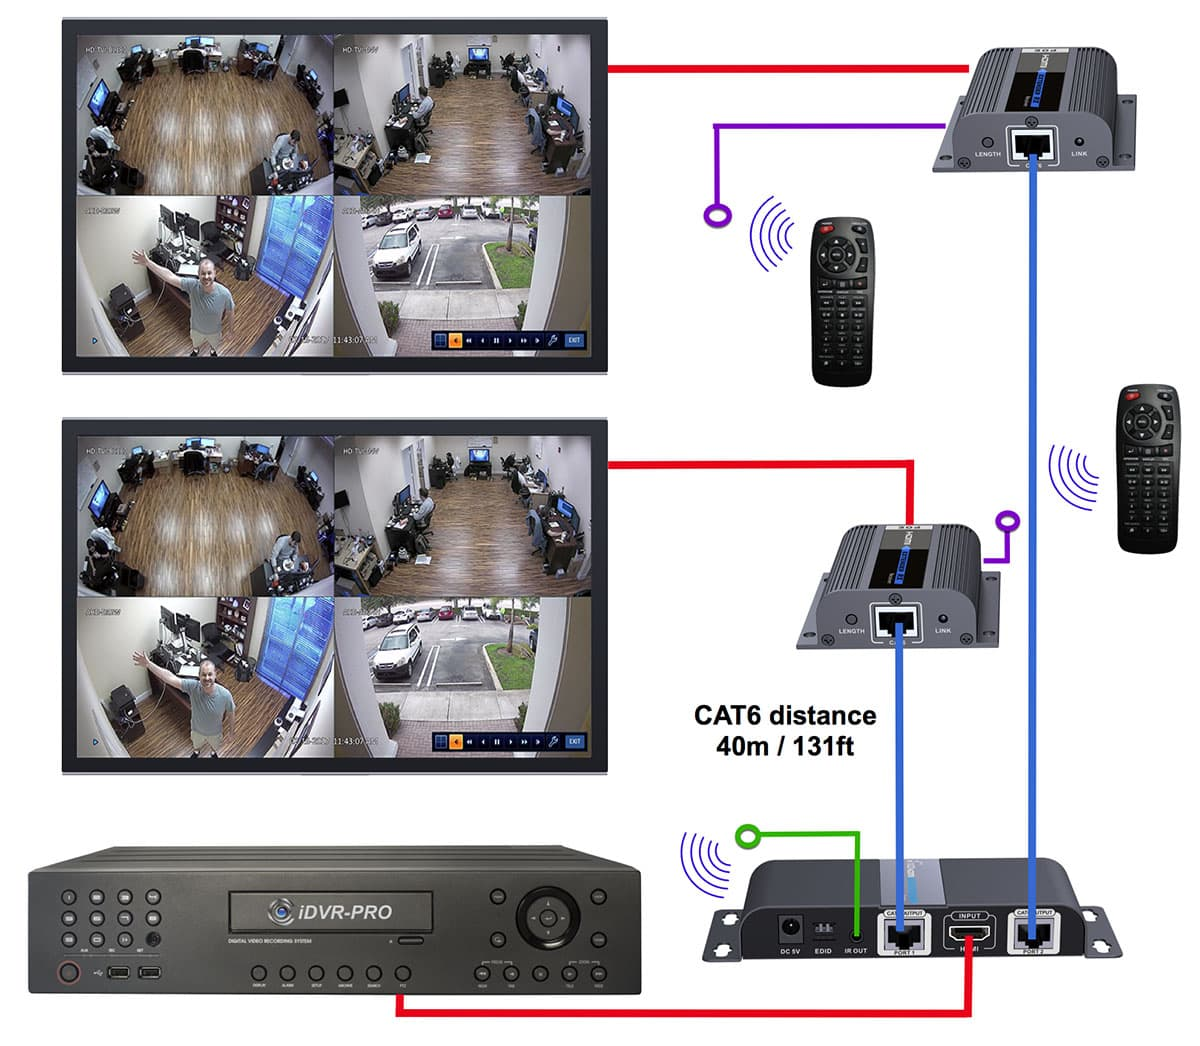 HDMI Over Cat6, View Security Cameras and DVRs, Multiple TVs